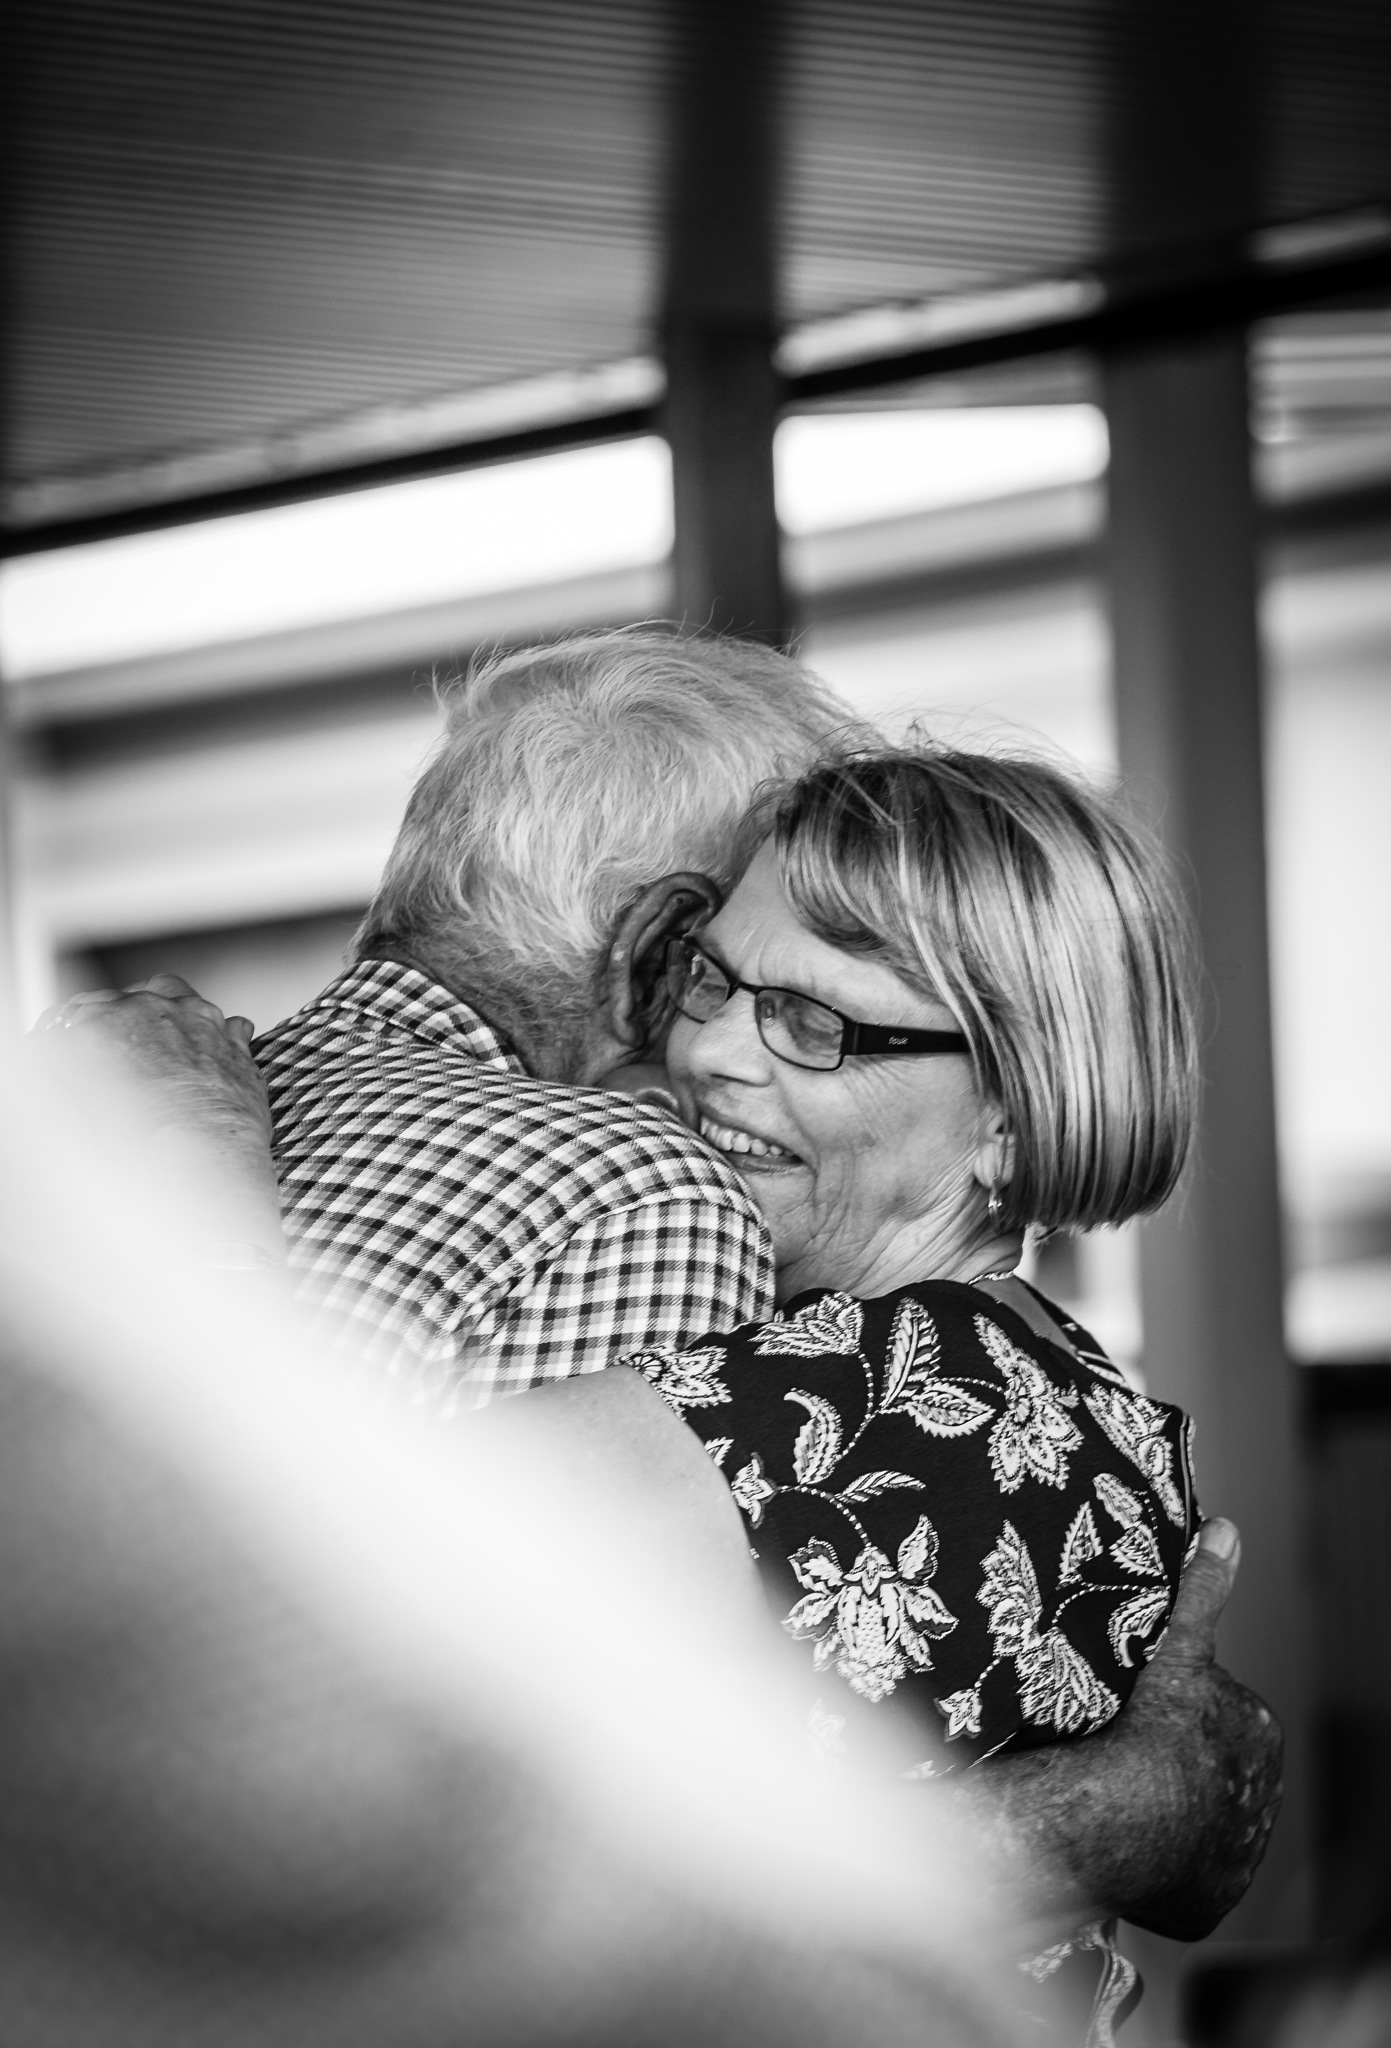 Happily Ever After: 54 Years of Marriage by David Dailey